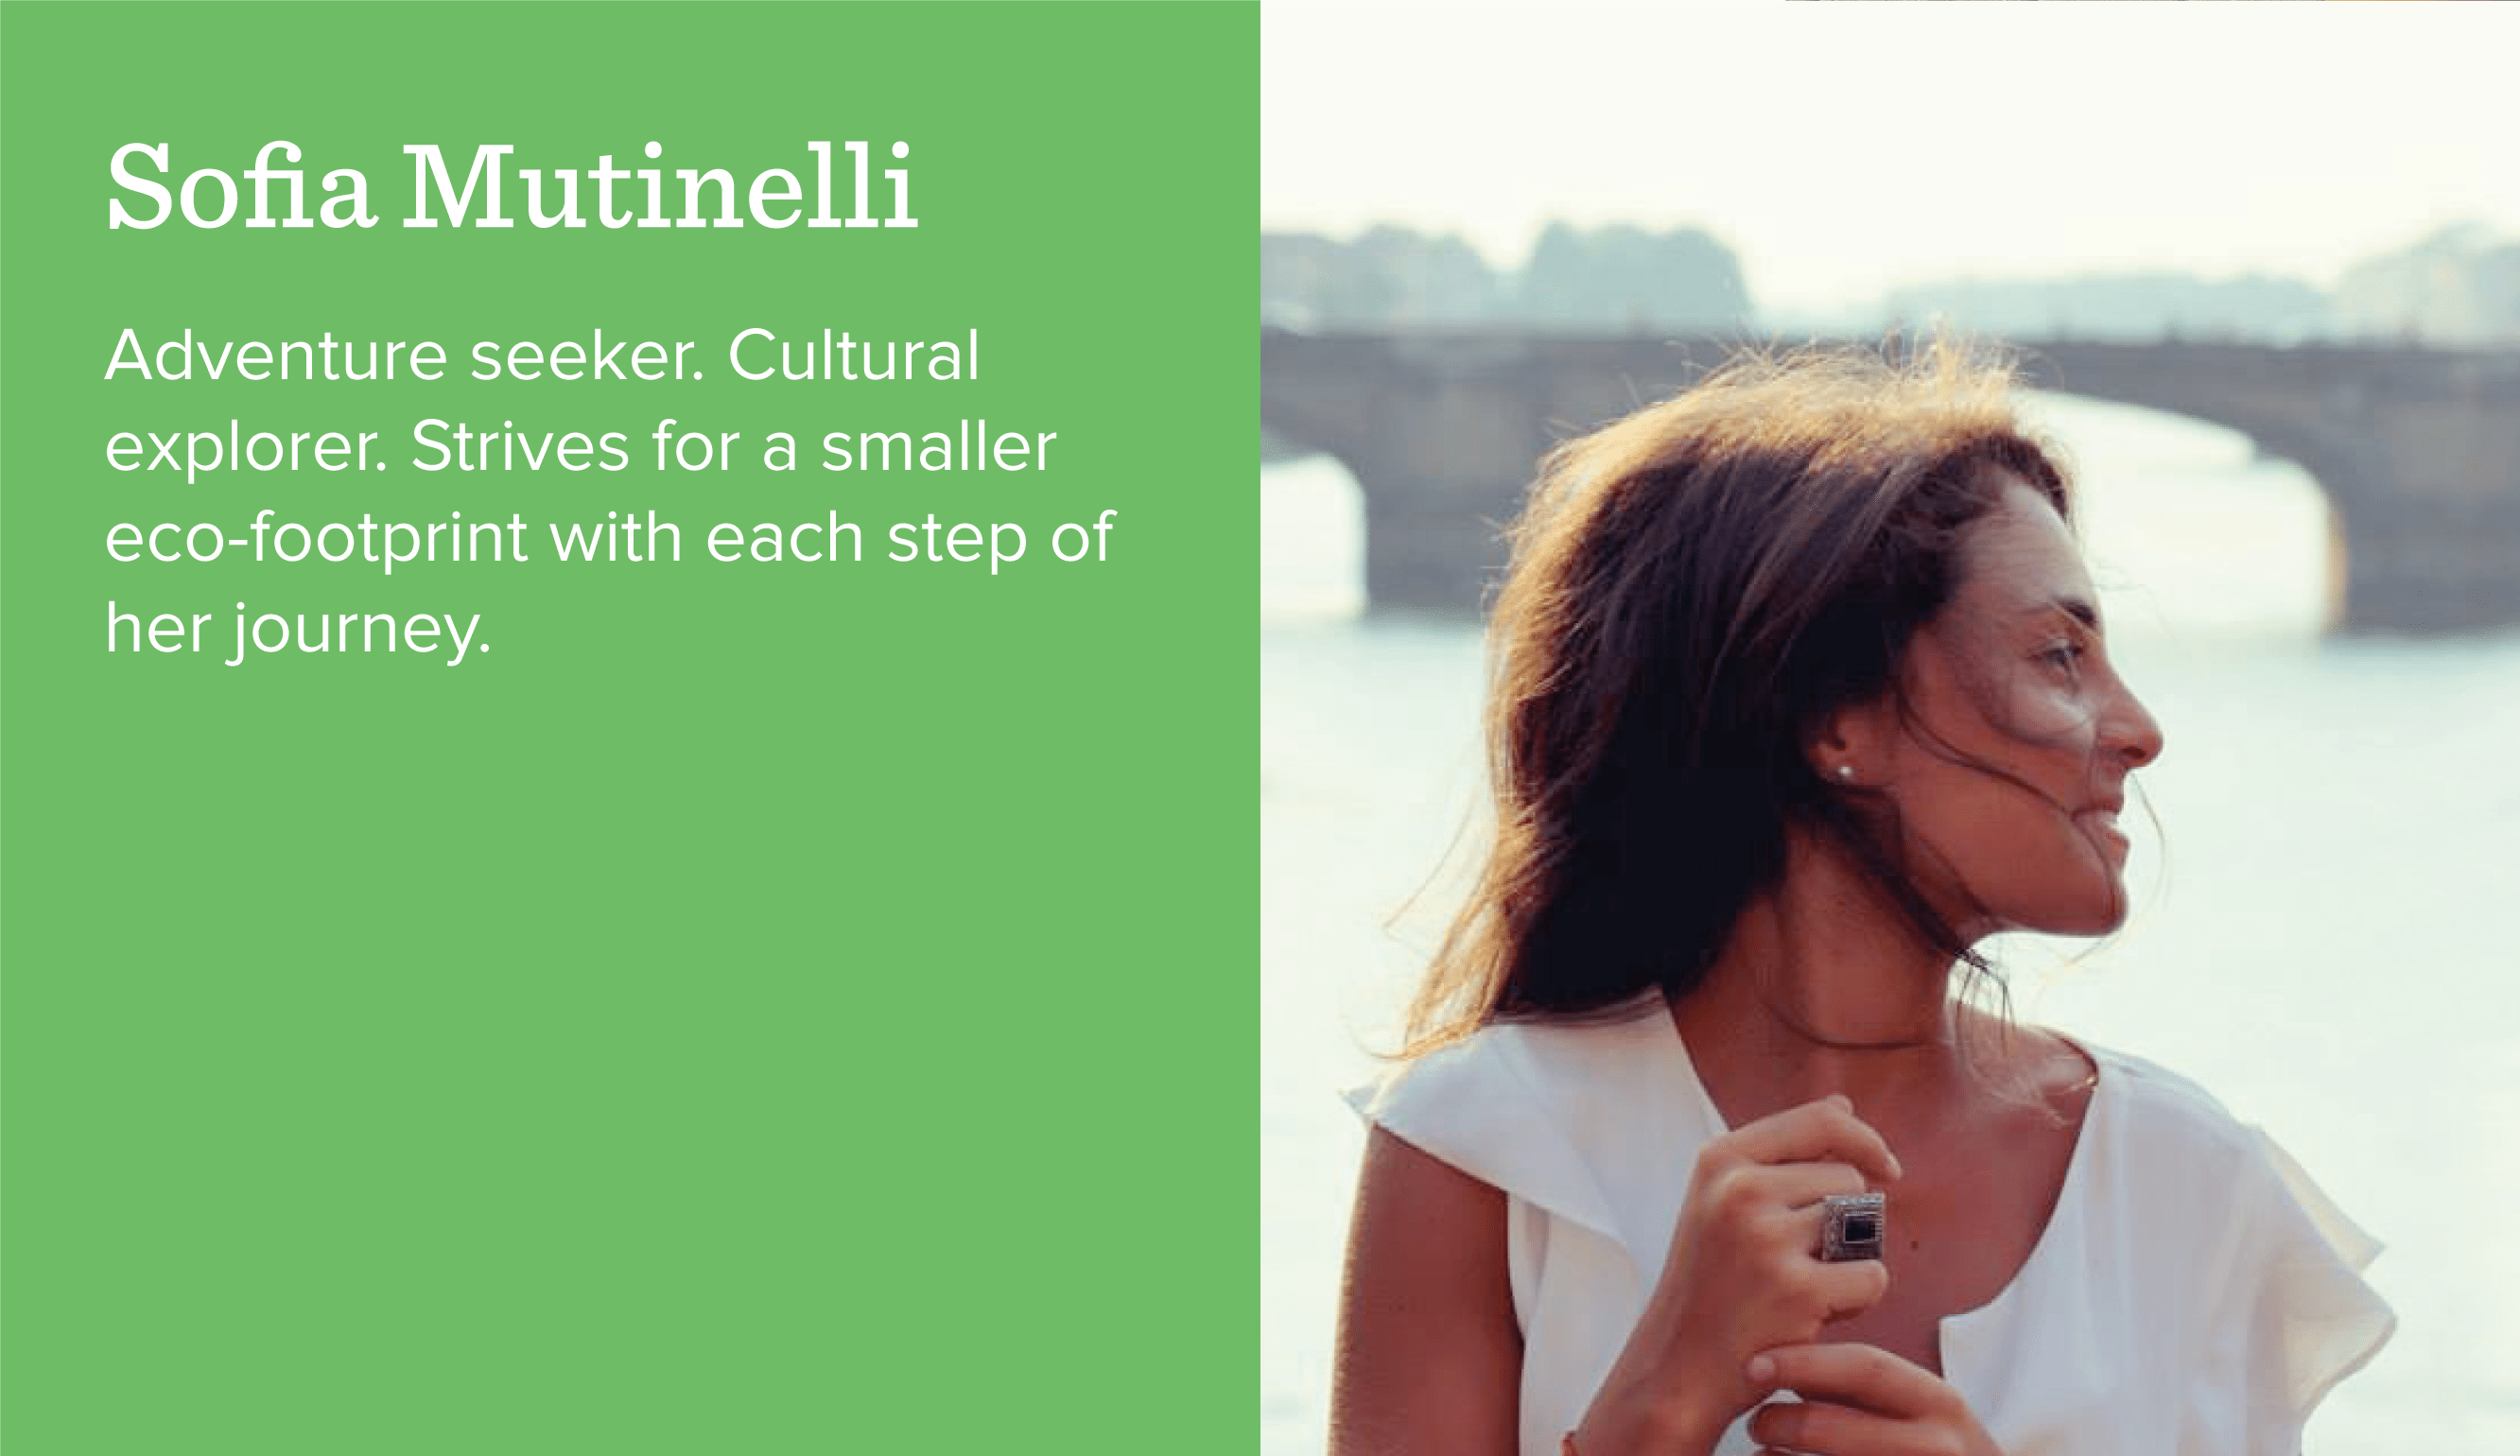 Sofia Mutinelli. Adventure seeker. Cultural explorer. Strives for a smaller eco-footprint with each step of her journey.